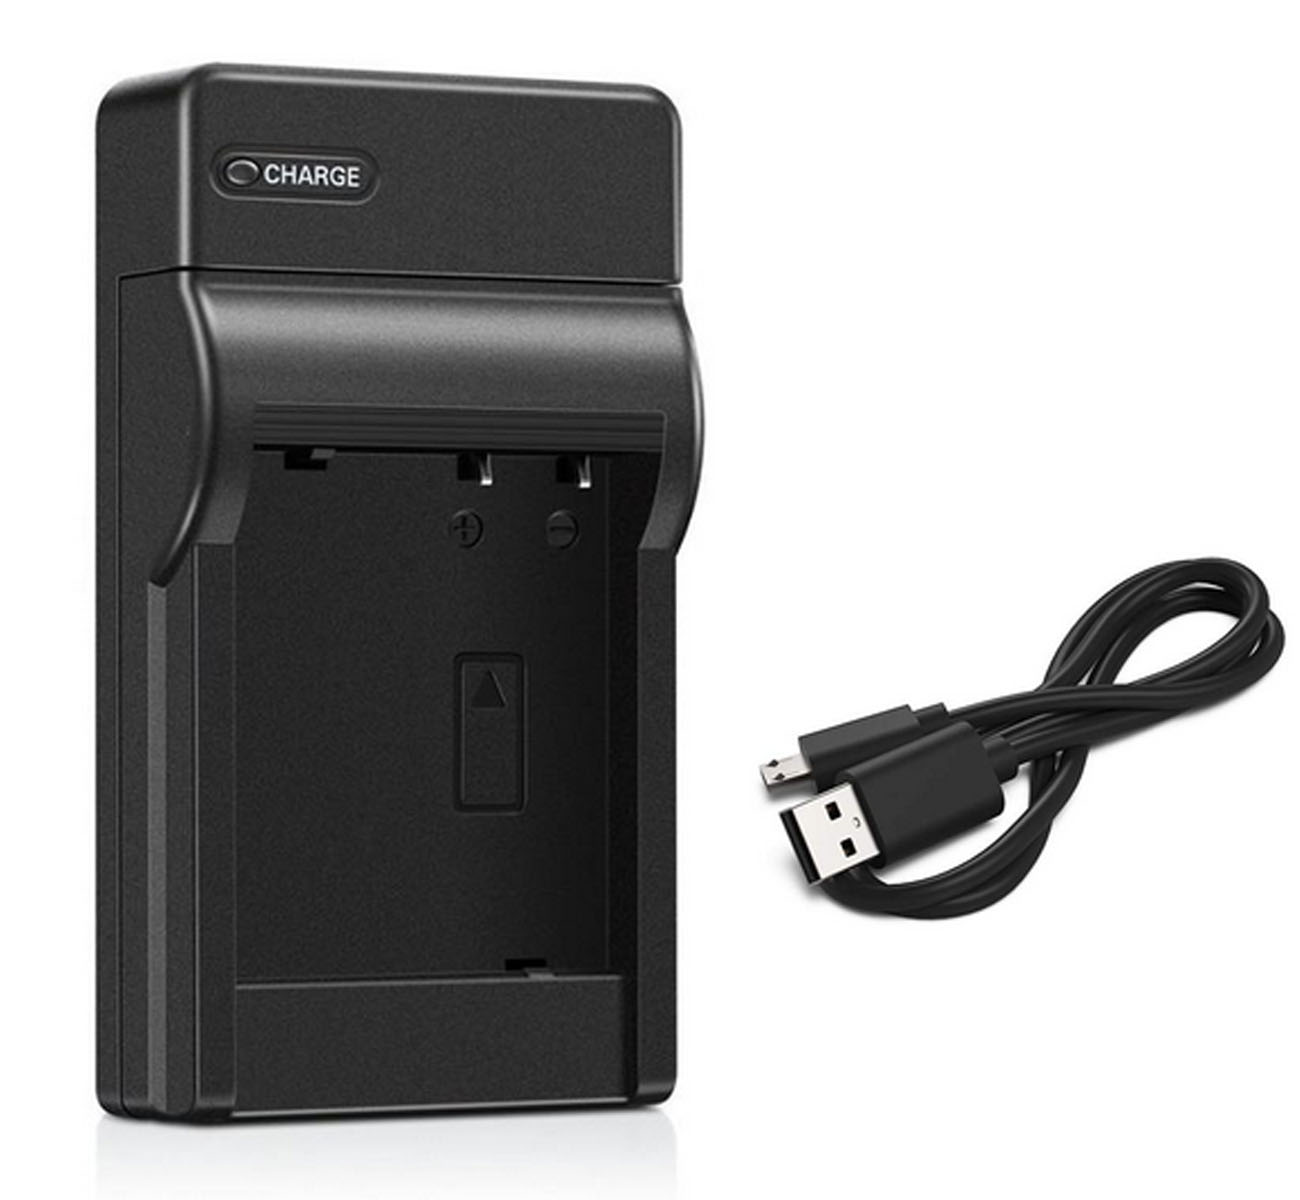 Battery Pack and LCD USB Travel Charger for Samsung VP-D93 VP-D97 VP-D99 Digital Video Camcorder